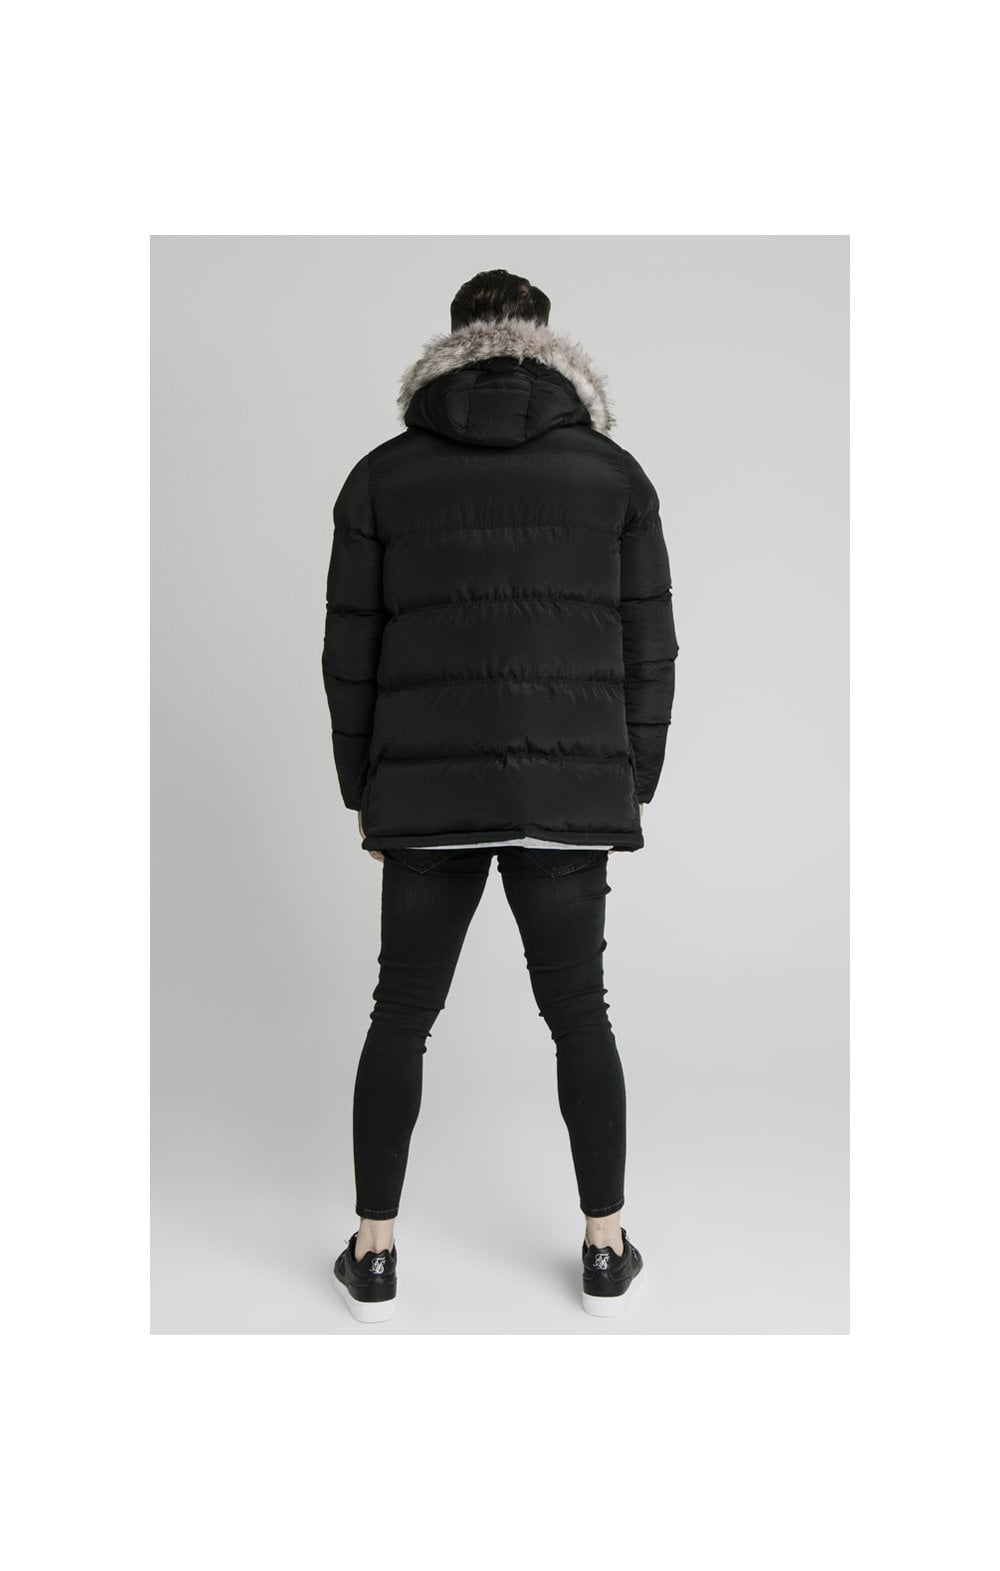 Load image into Gallery viewer, SikSilk Rip Stop Puff Parka - Black (5)